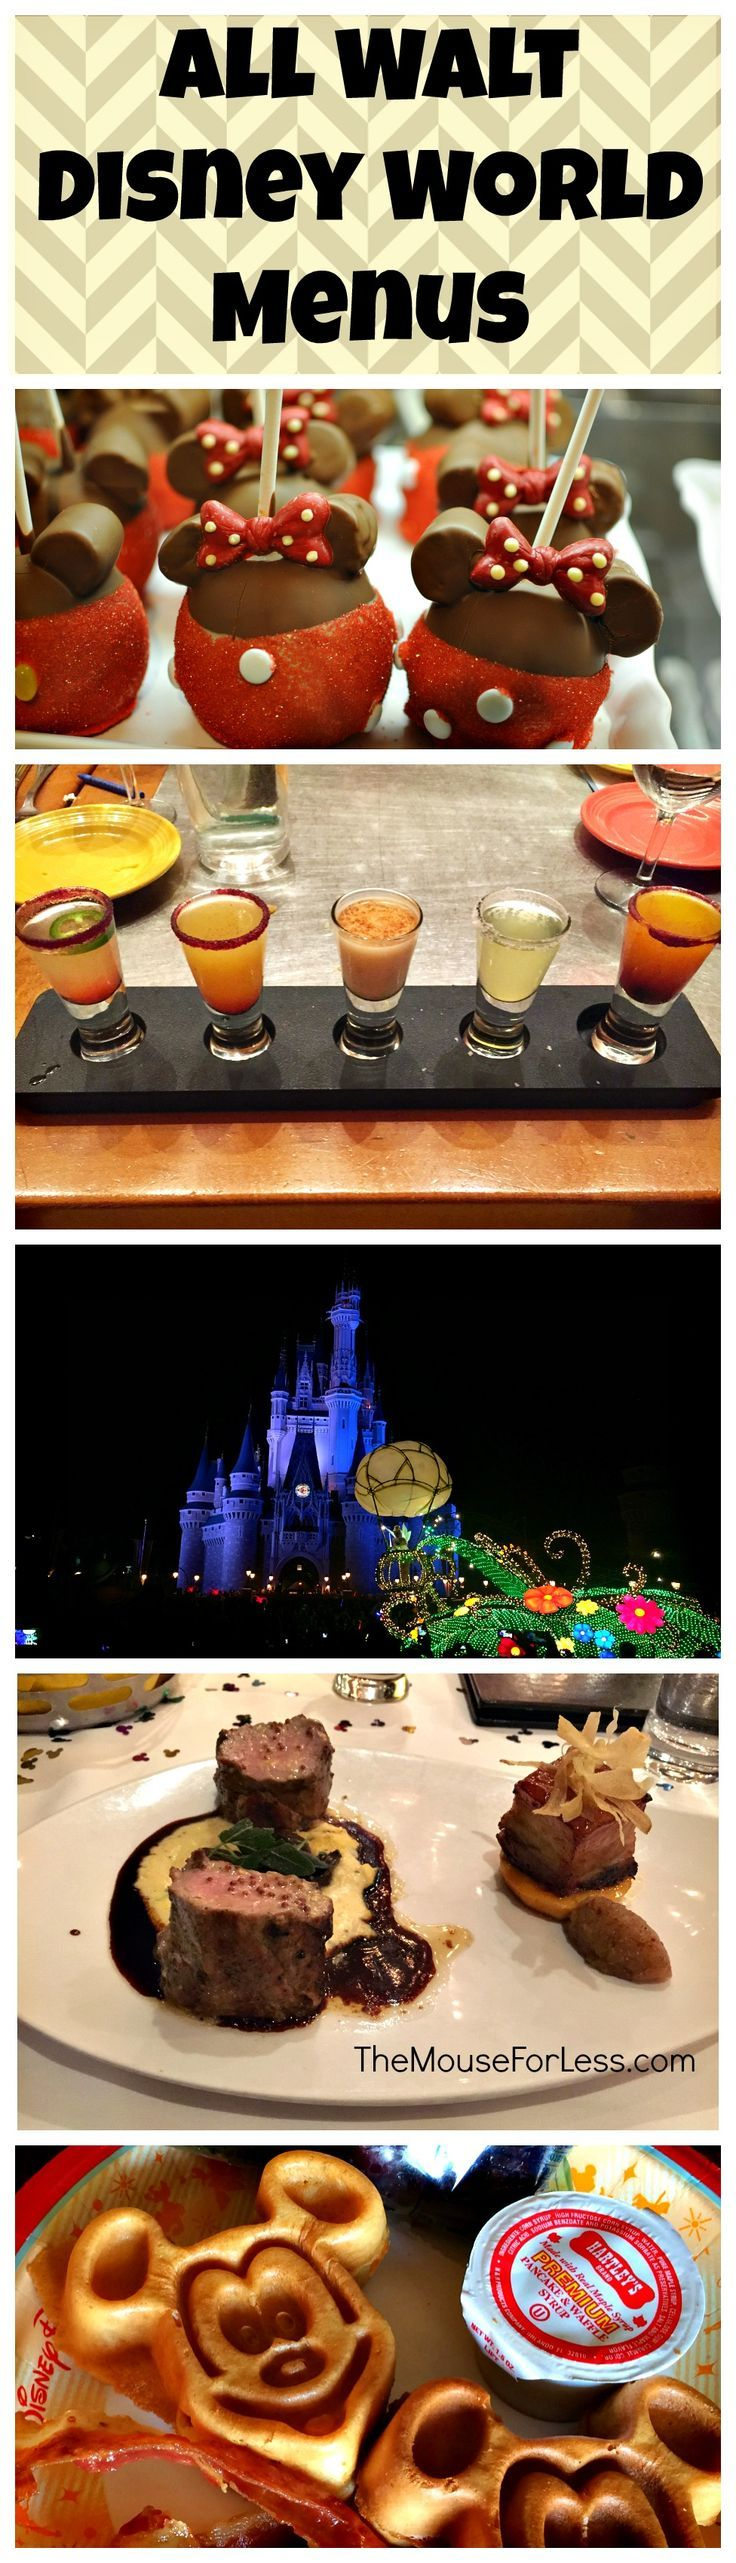 All the latest Walt Disney World Menus - Disney Dining information & money saving tips and hacks - Disney Dining Plans & even information on Free Dining.